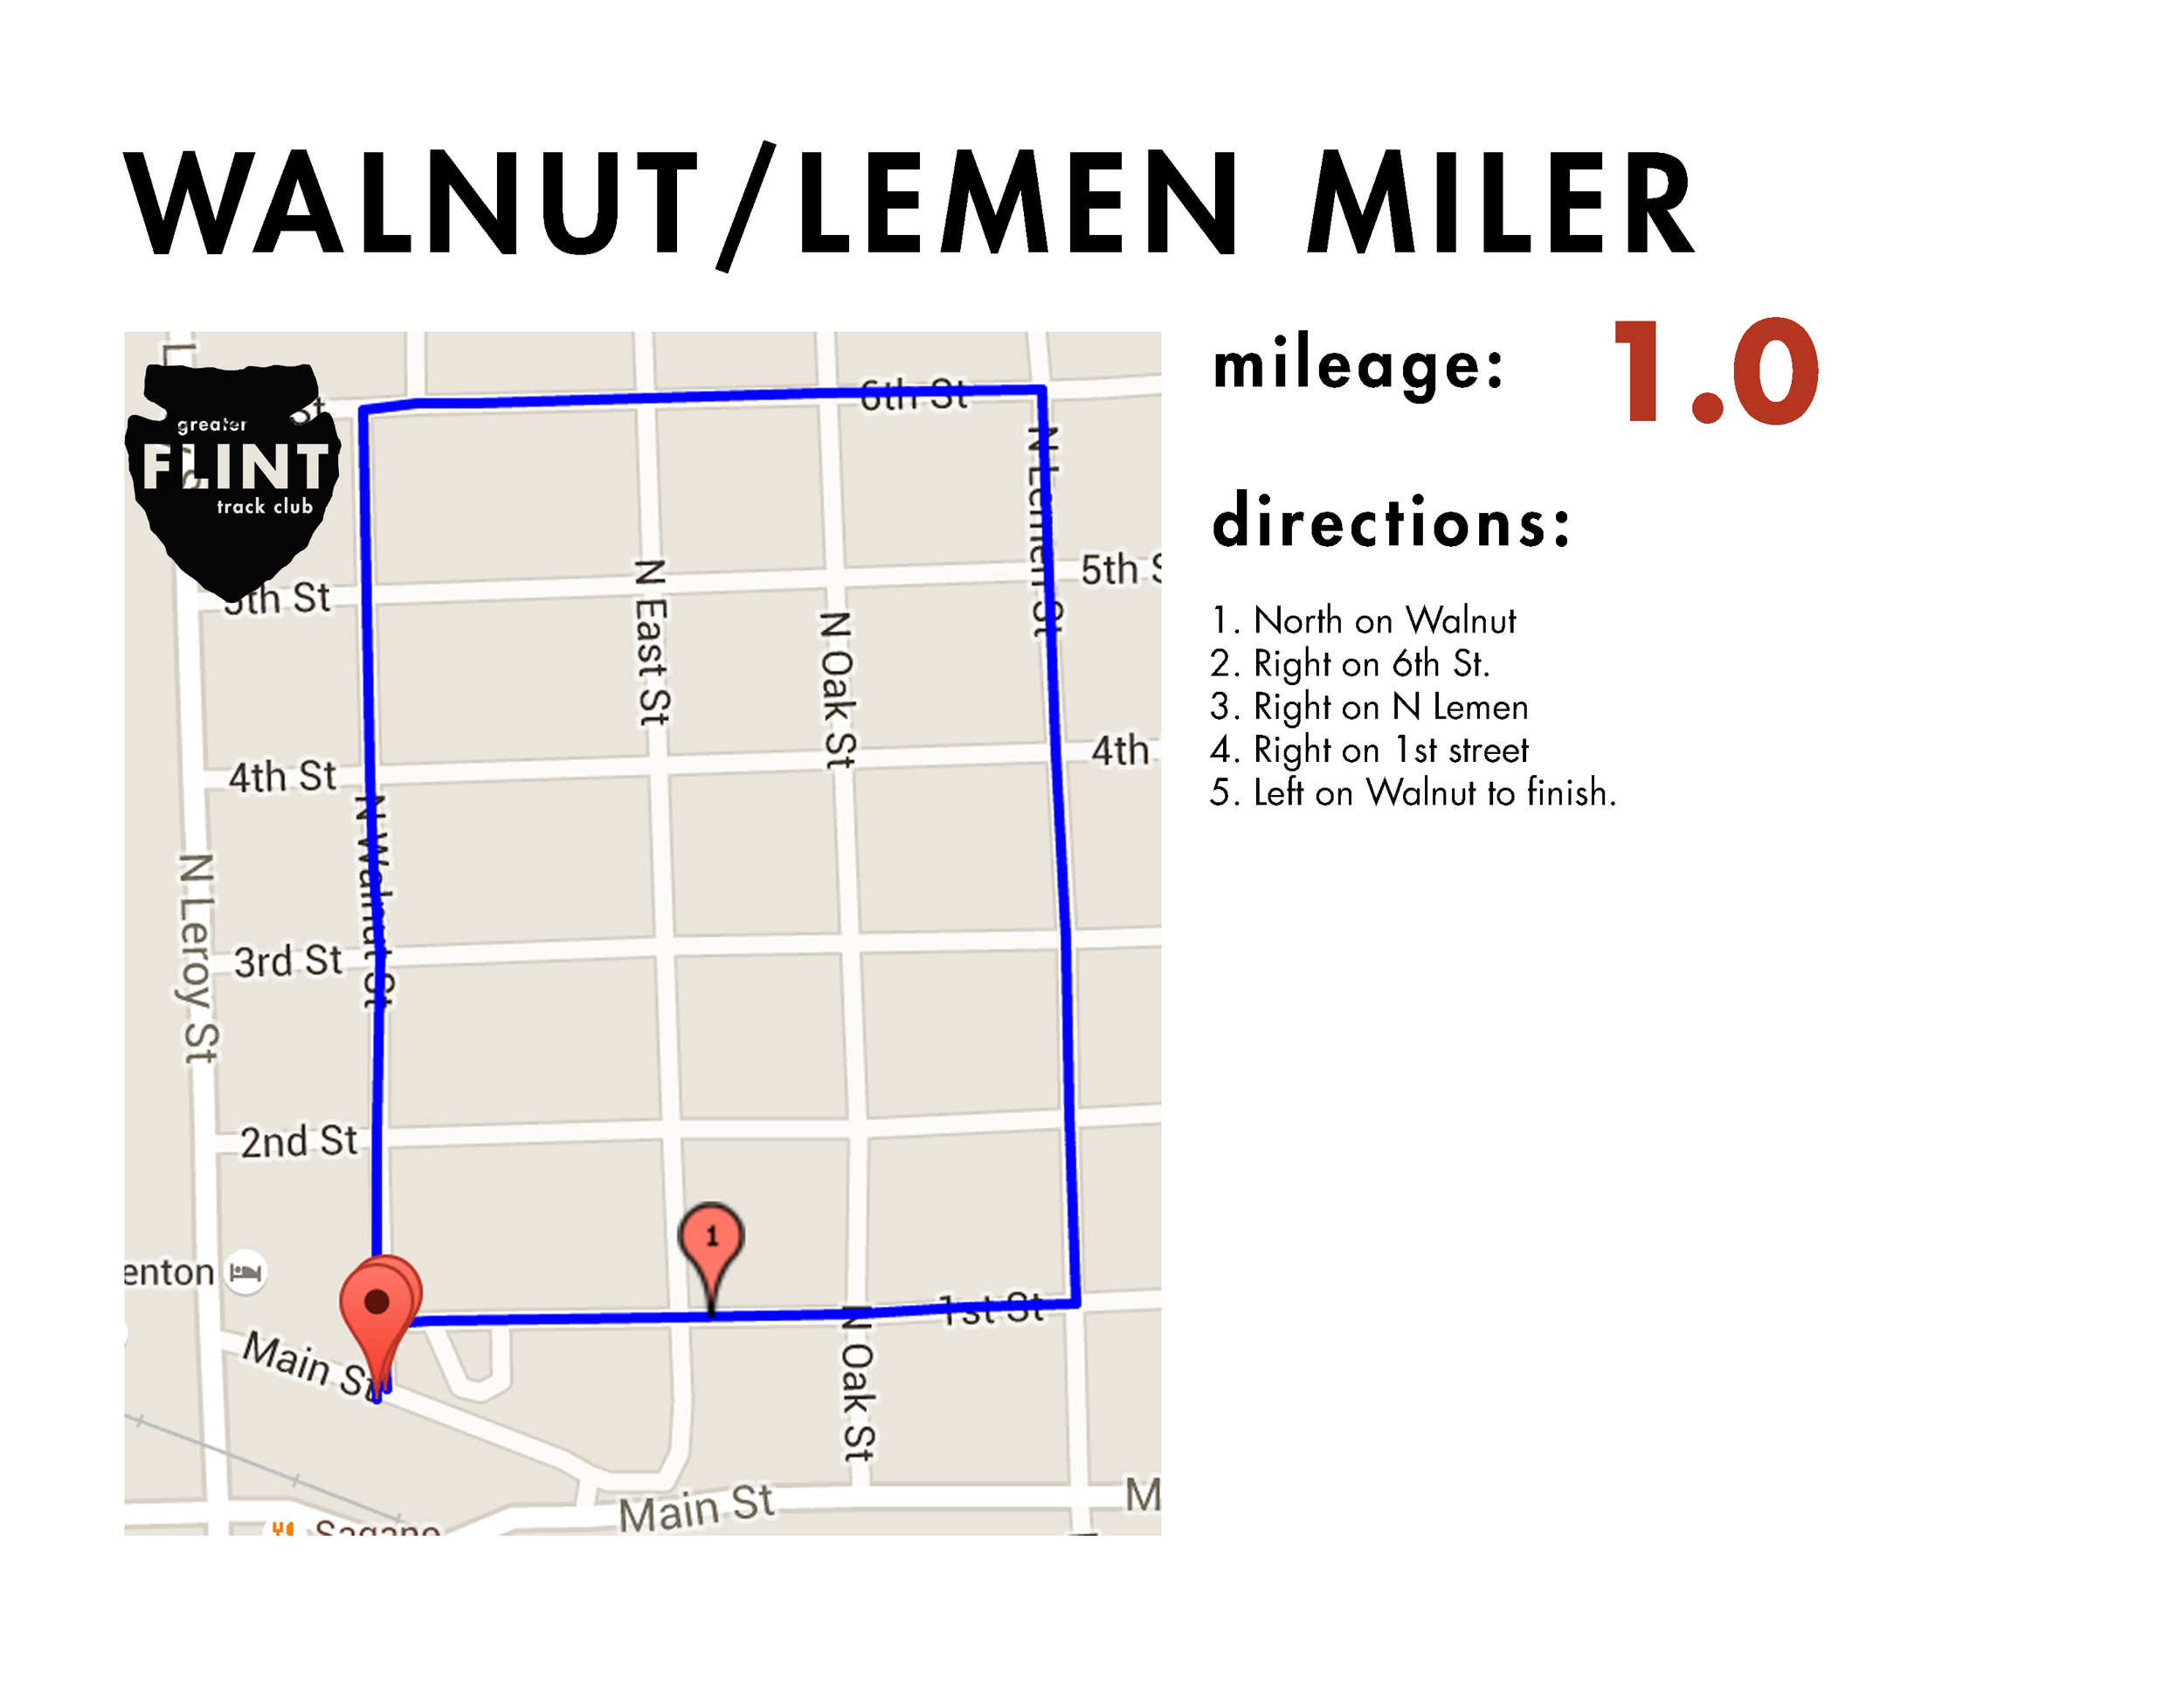 test your mile speed or run this as a short add on to any run. Perfect for beginners that need an accessible route with turn-offs or add-ons available. Also a square so that is nice for navigation.